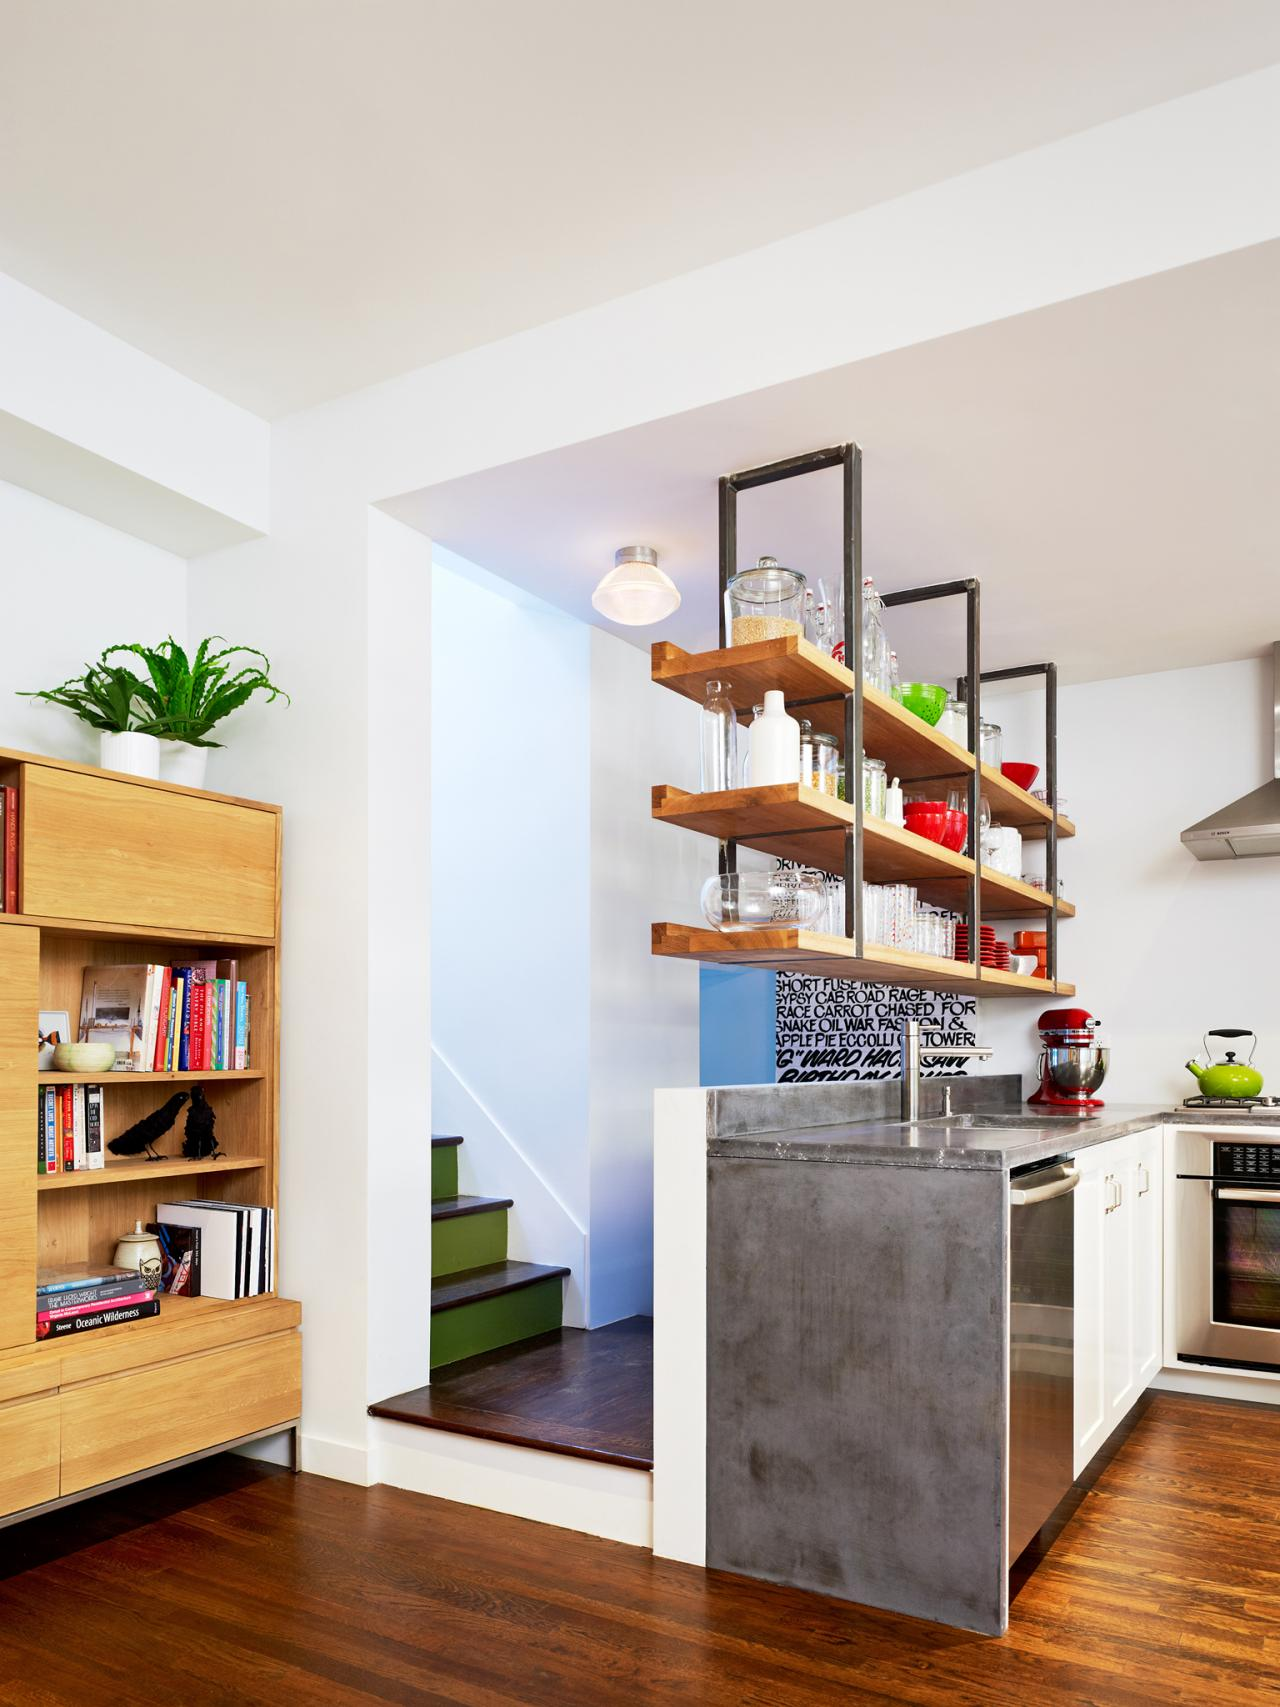 The benefits of open shelving in the kitchen hgtv 39 s Open shelving